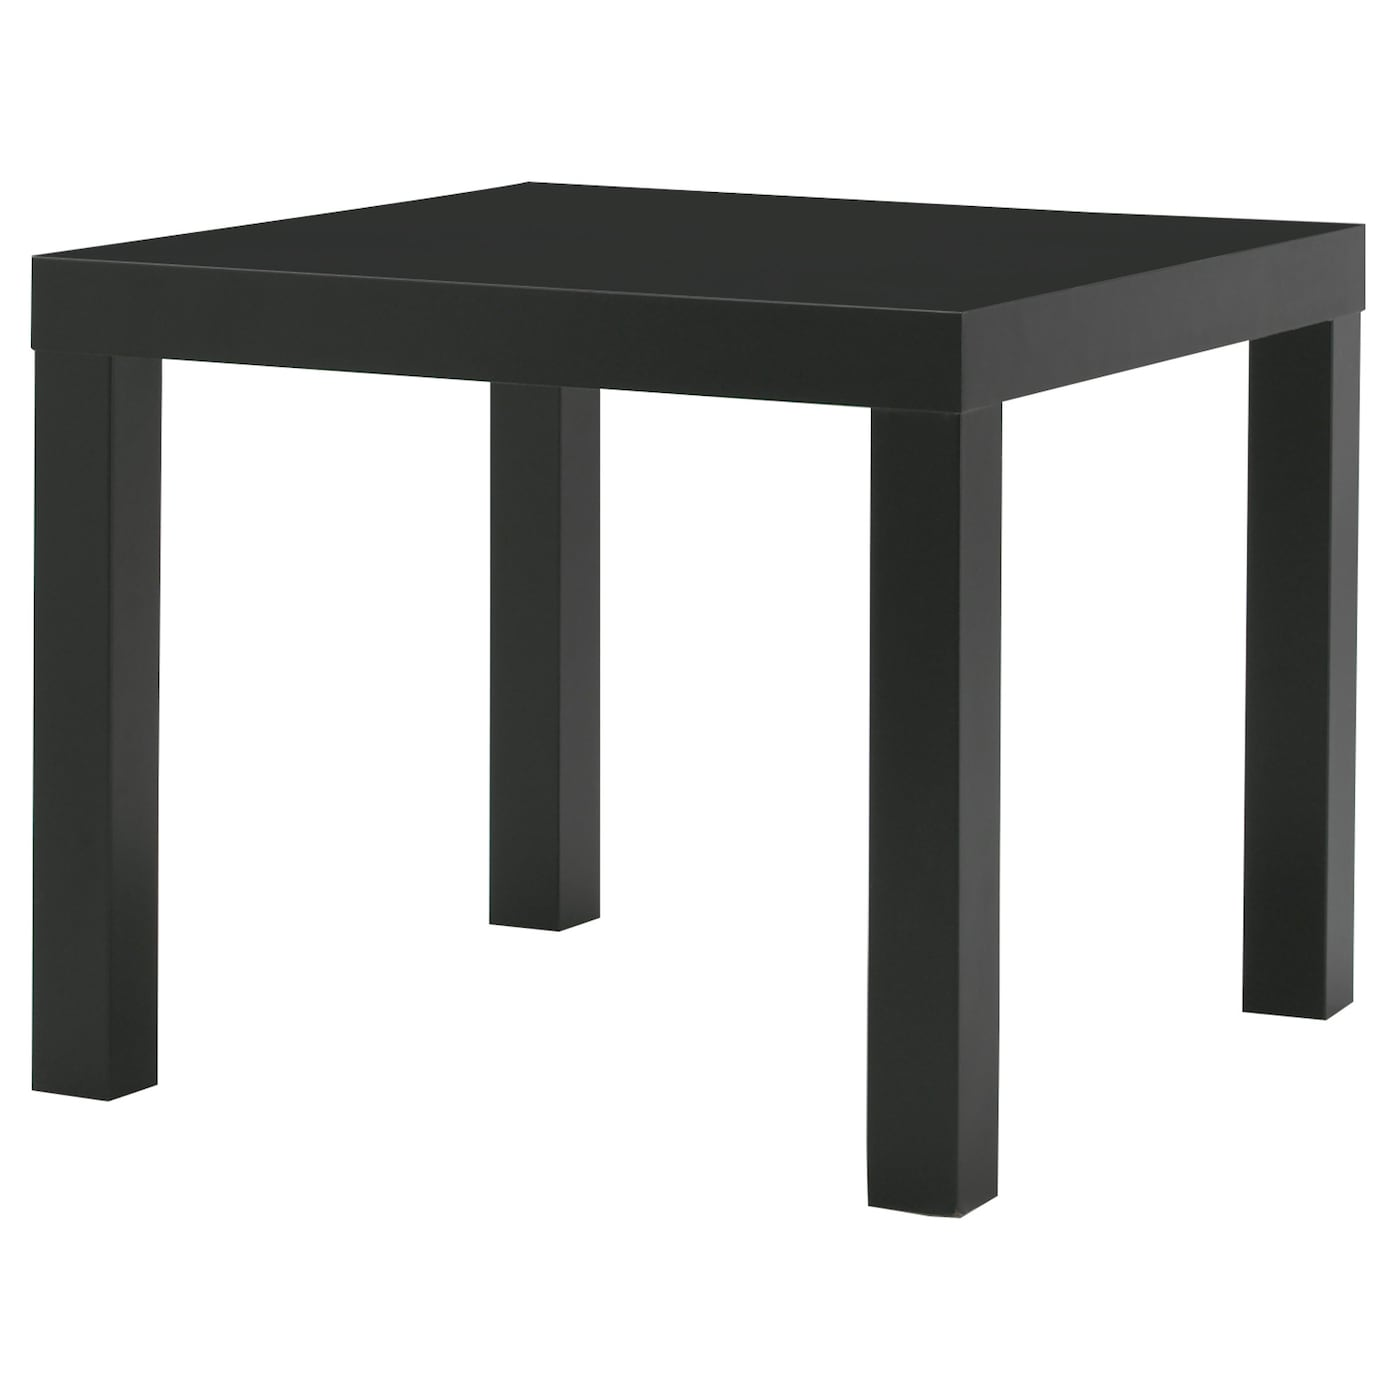 Lack side table black 55 x 55 cm ikea for Ikea drawing desk